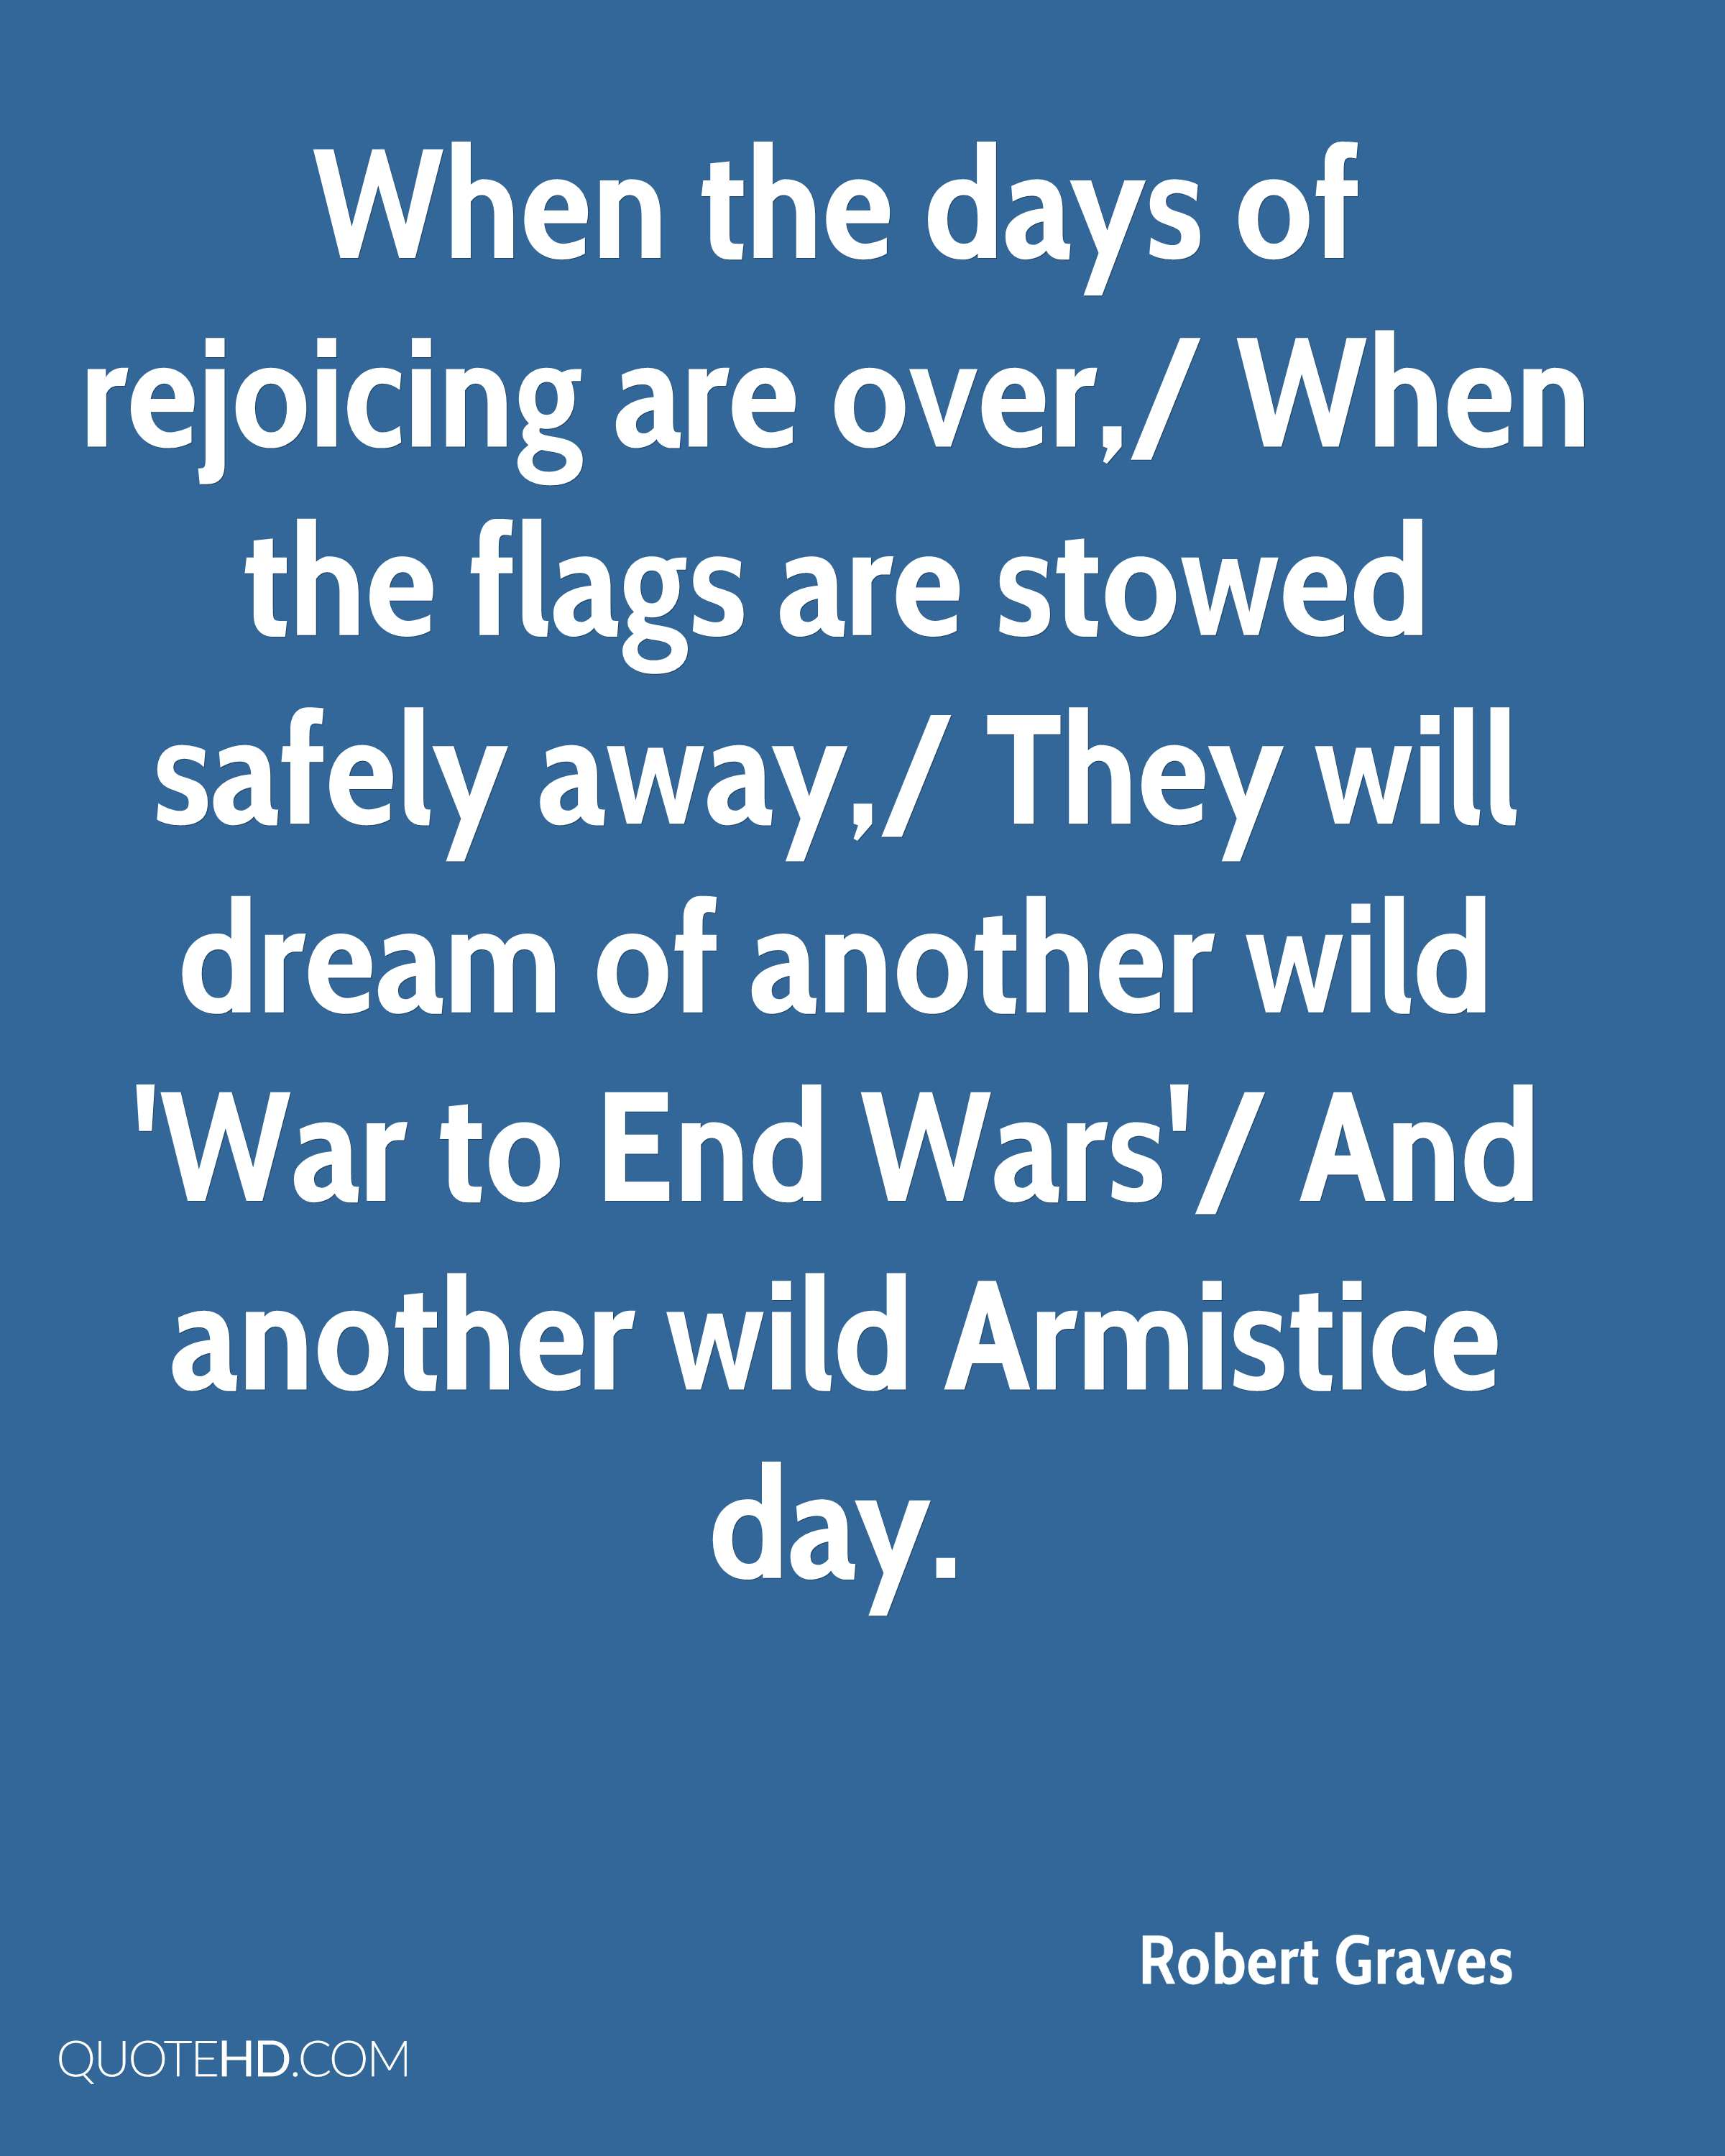 When the days of rejoicing are over,/ When the flags are stowed safely away,/ They will dream of another wild 'War to End Wars'/ And another wild Armistice day.